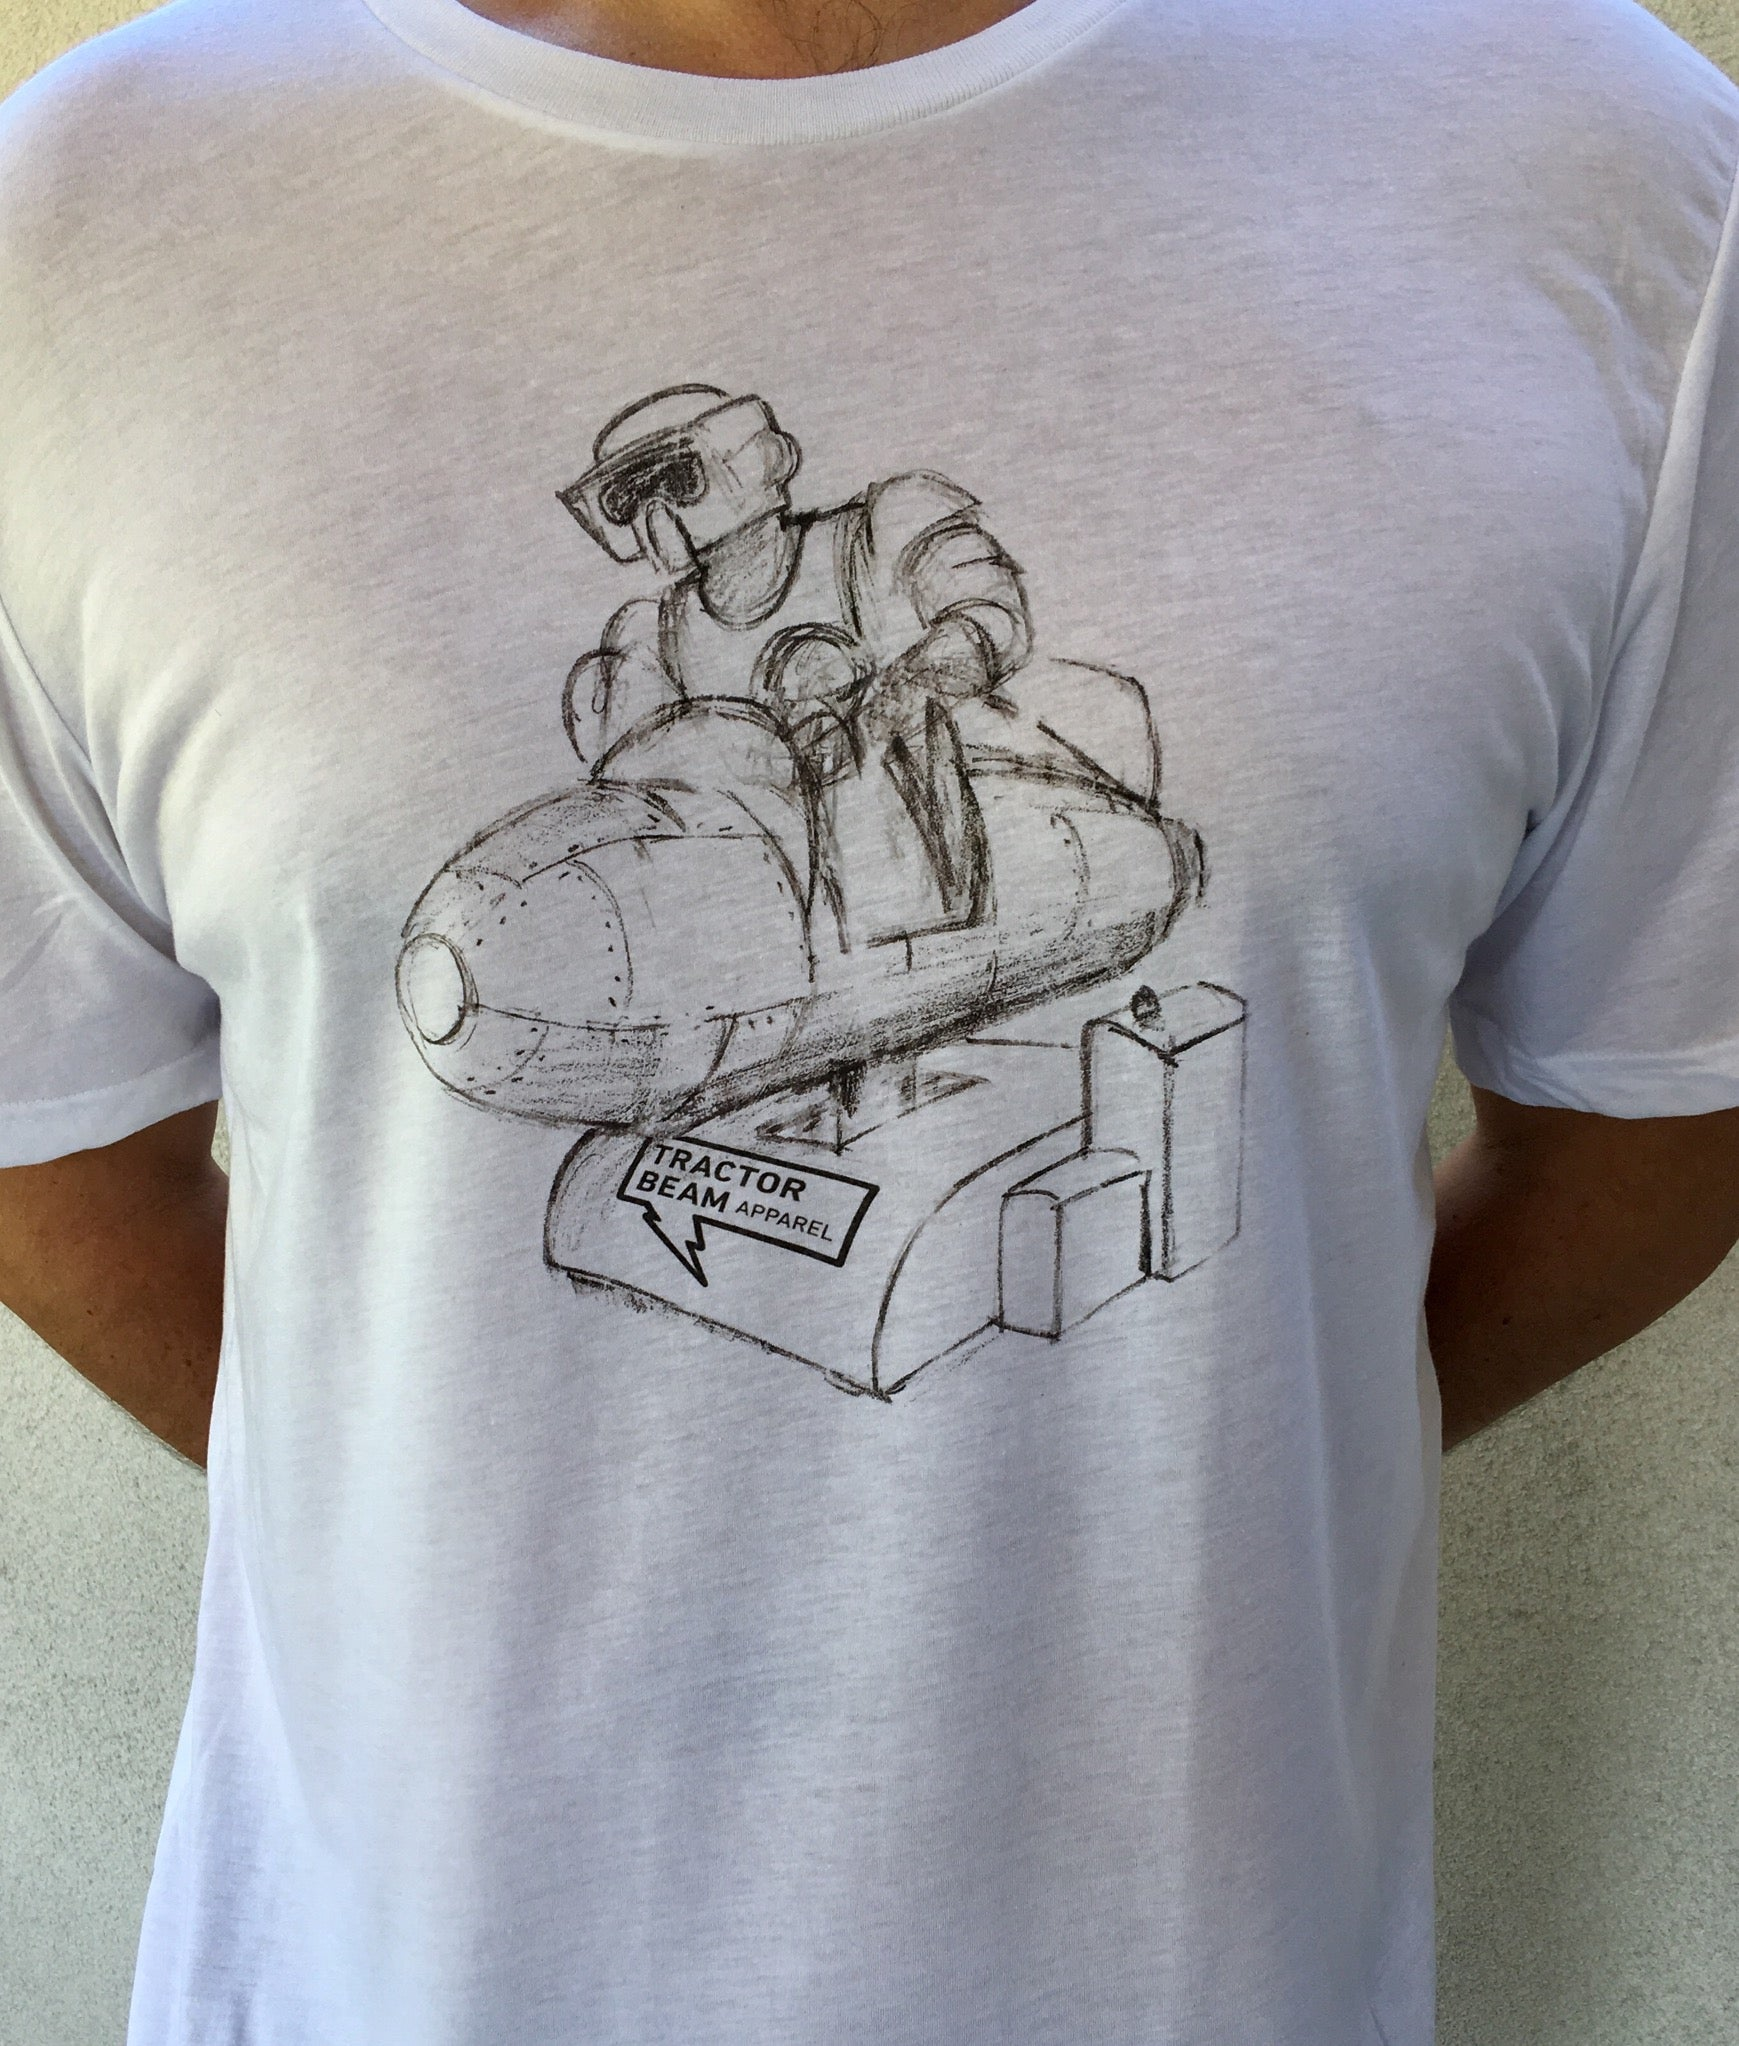 Rocket Trooper T-Shirt - Tractor Beam Apparel